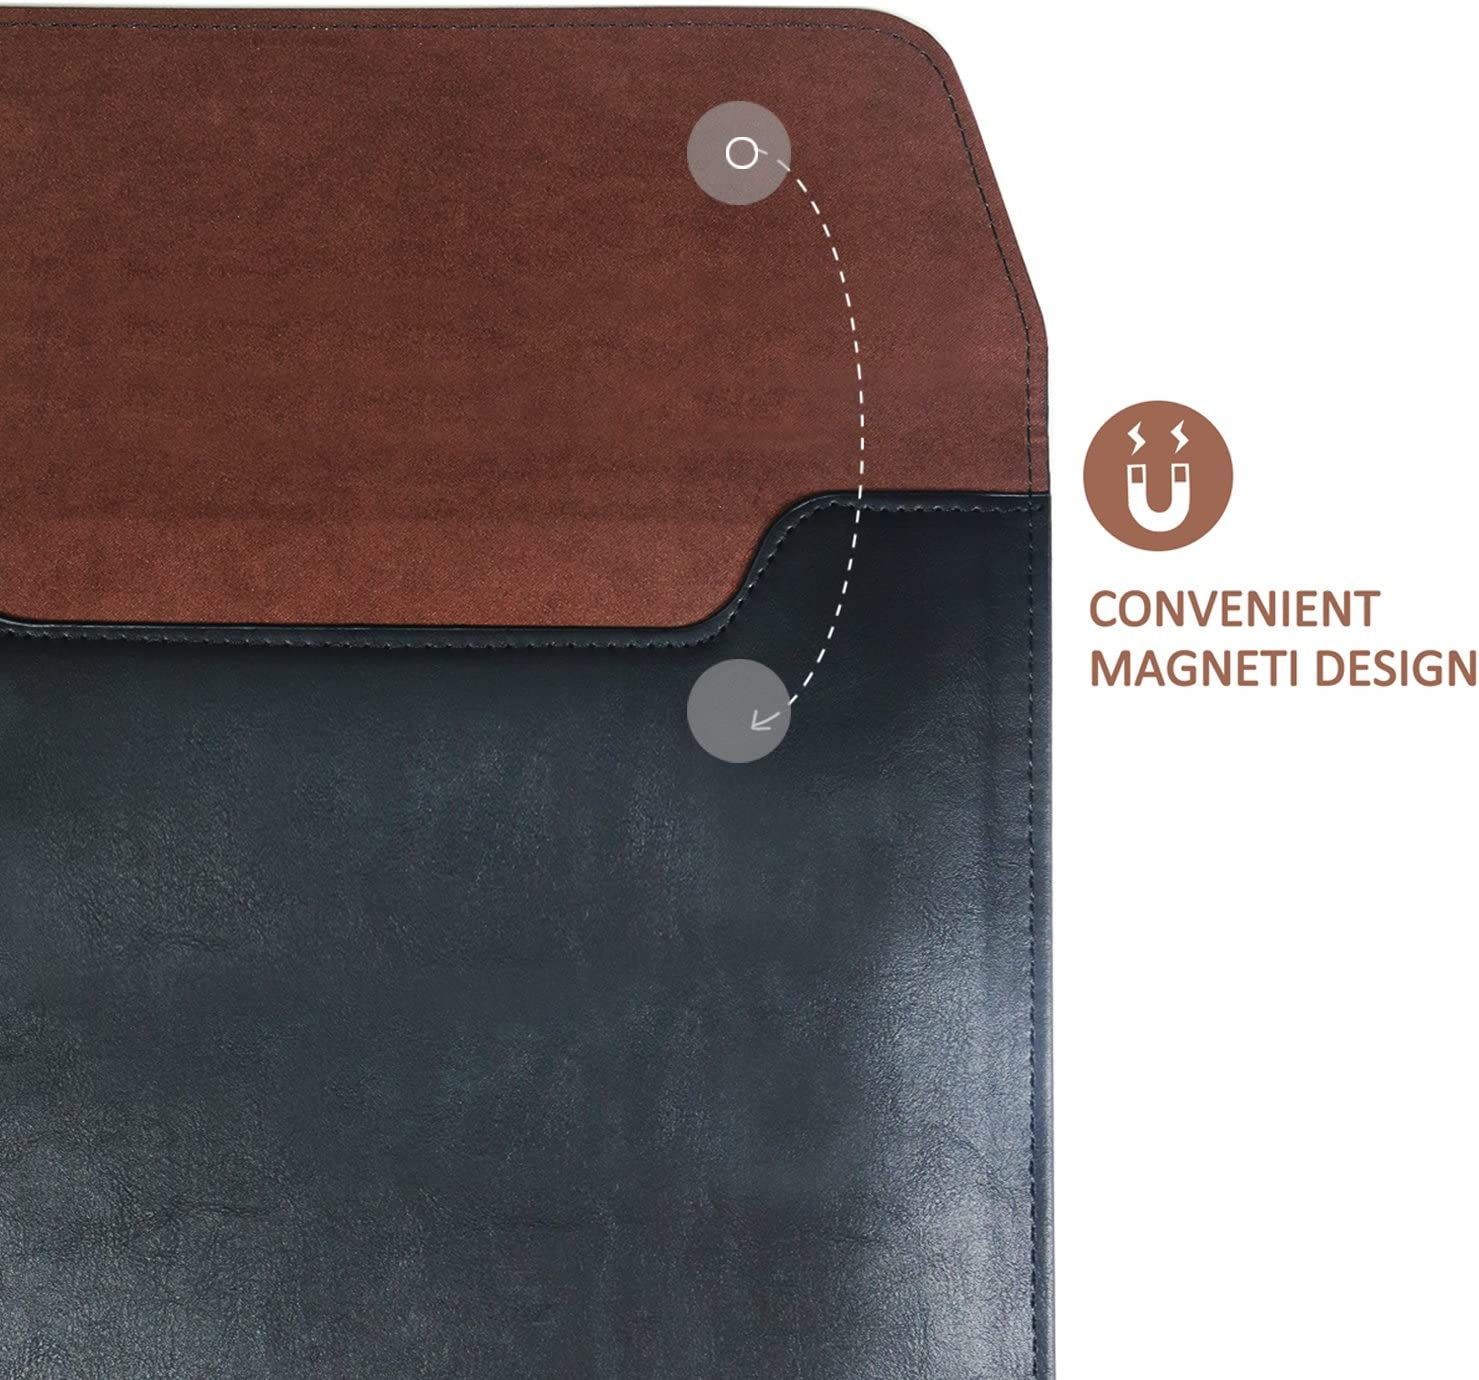 J.M.SHOW Tablet Sleeve Compatible for iPad Mini 4 Mini 3 Mini 2 Leather Case Cover iPad Mini 4-8 inch, Brown